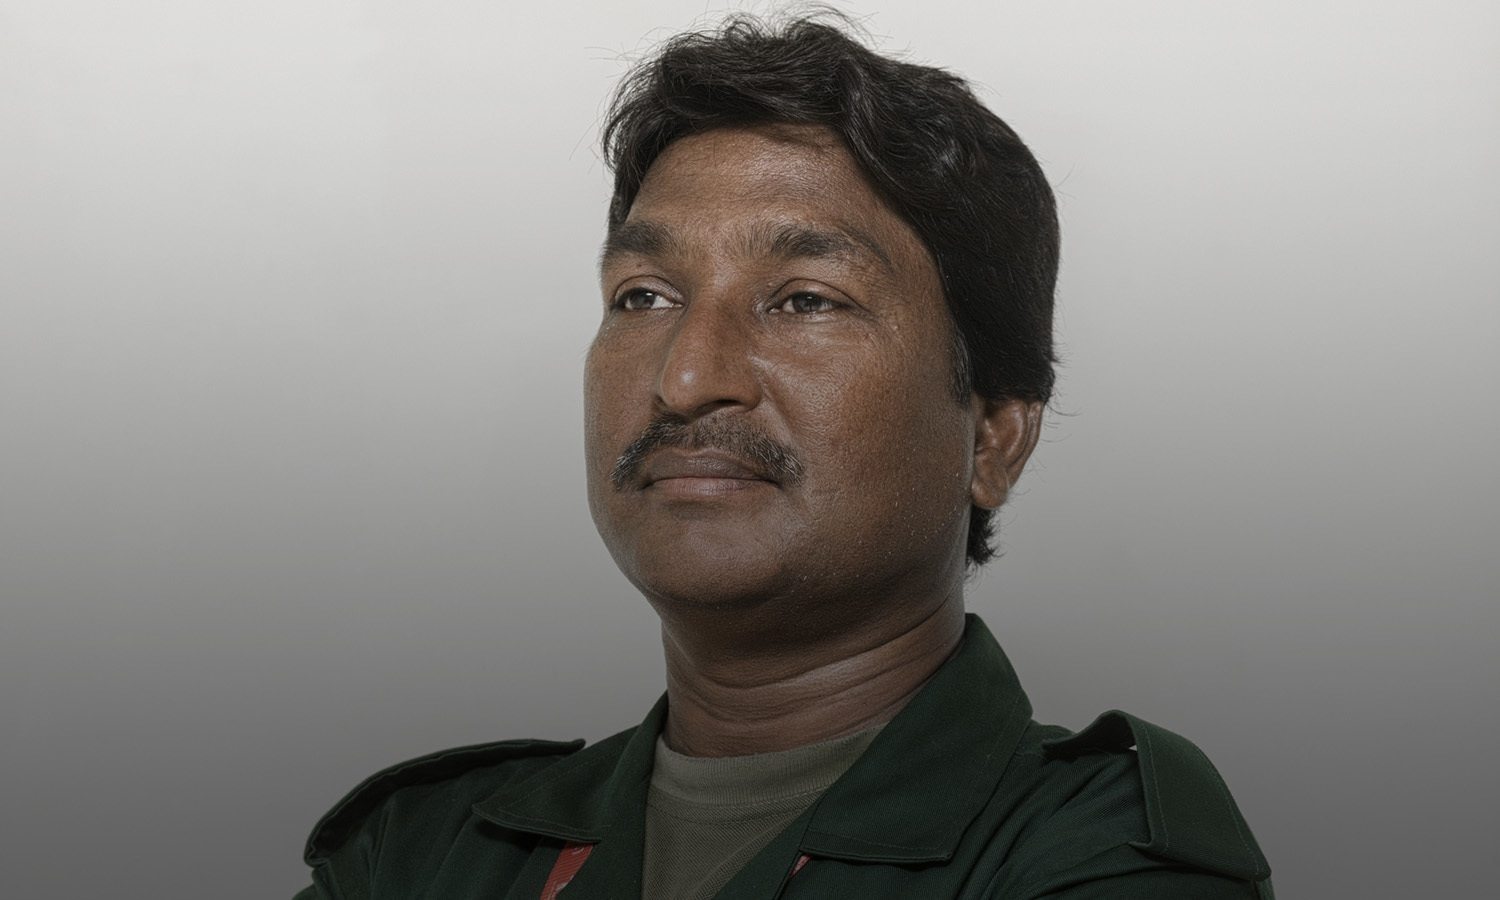 "<p>One morning at 3.30am, Sabir Christopher, an Aman Ambulance Services vehicle operator, picked up a critically ill patient and swiftly proceeding towards JPMC. <p>Out of nowhere, an armed man walked towards the ambulance. ""As we drove towards him, the ambulance lights now illuminating him clearly, he raised the weapons and began firing at us."""